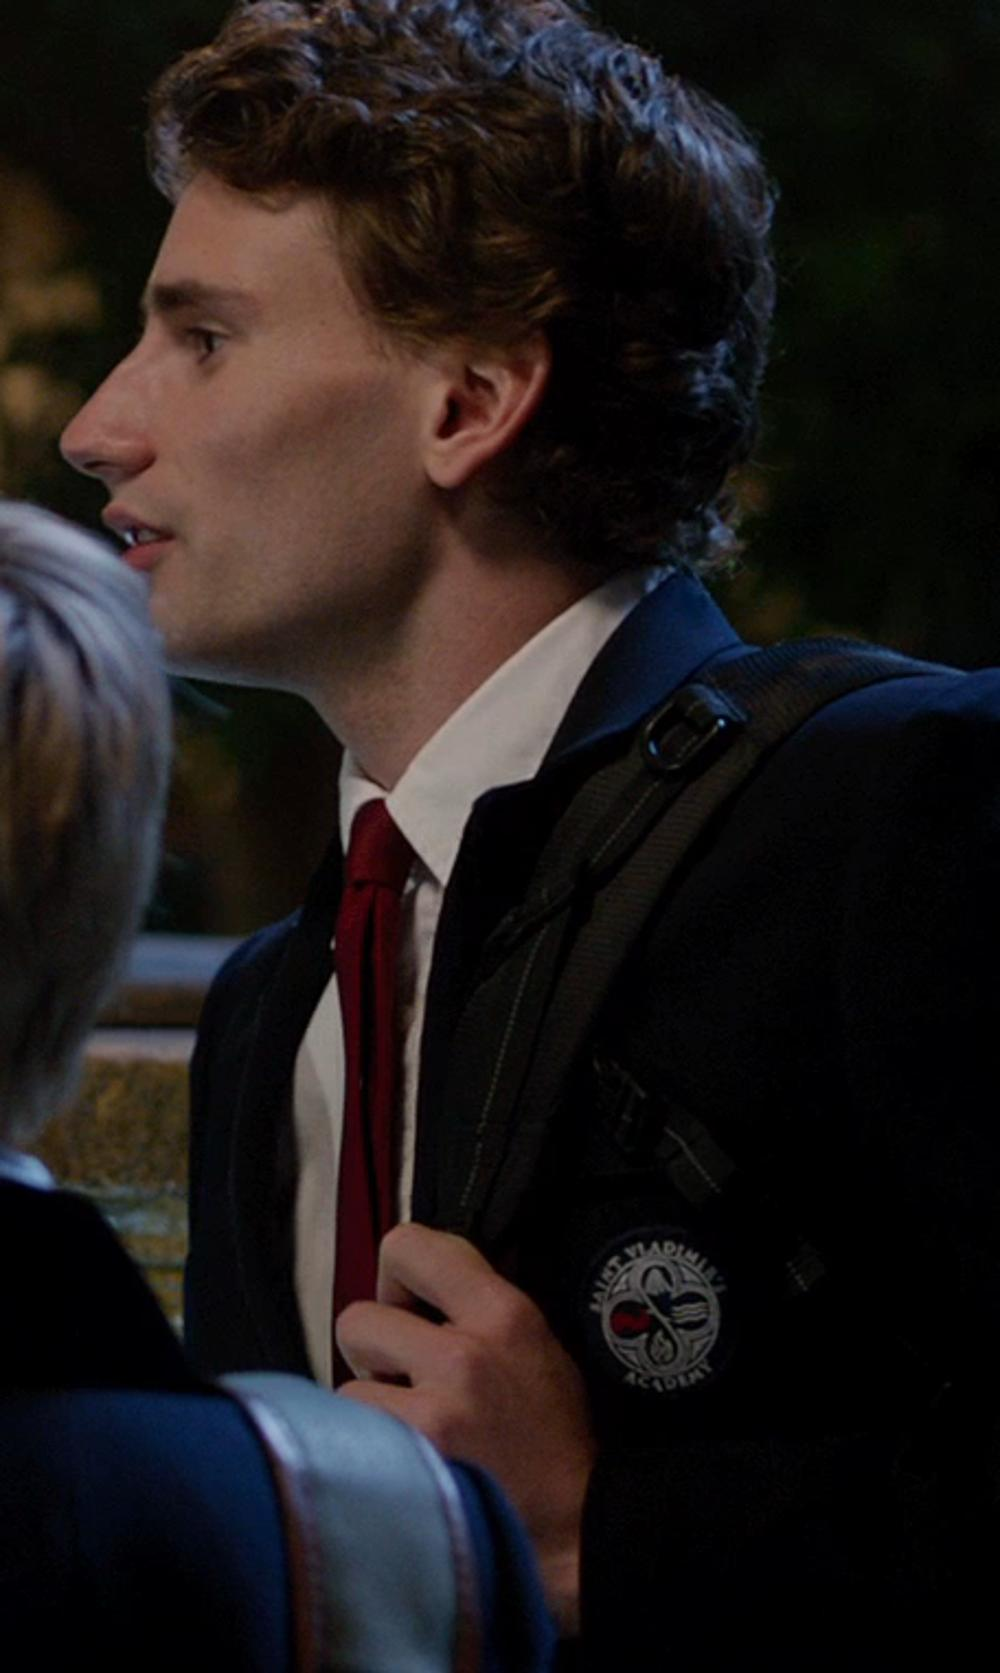 Edward Holcroft with PAUL SMITH Tie in Vampire Academy